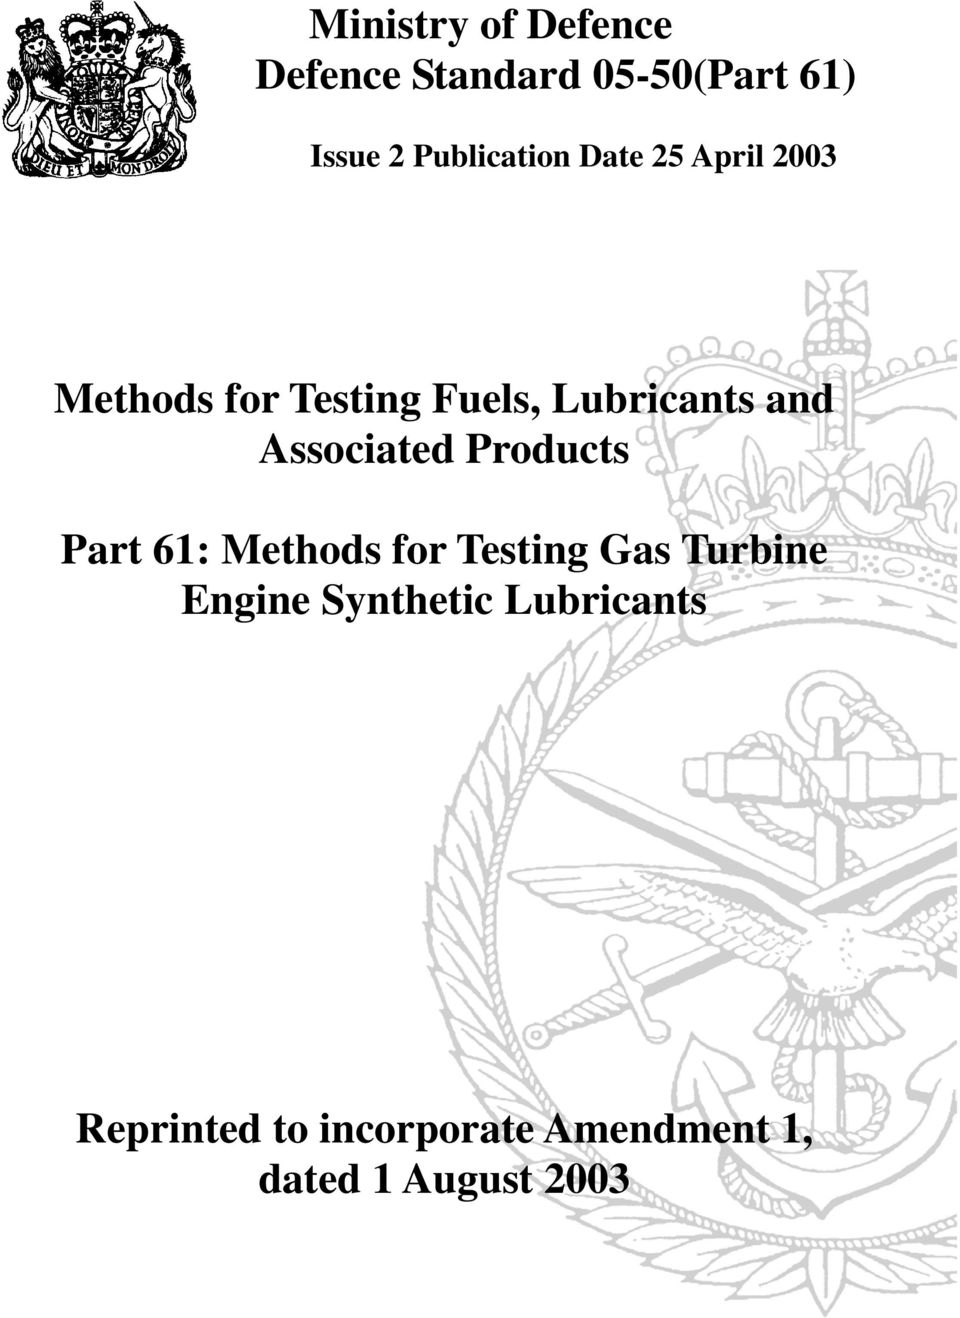 and Associated Products Part 61: Methods for Testing Gas Turbine